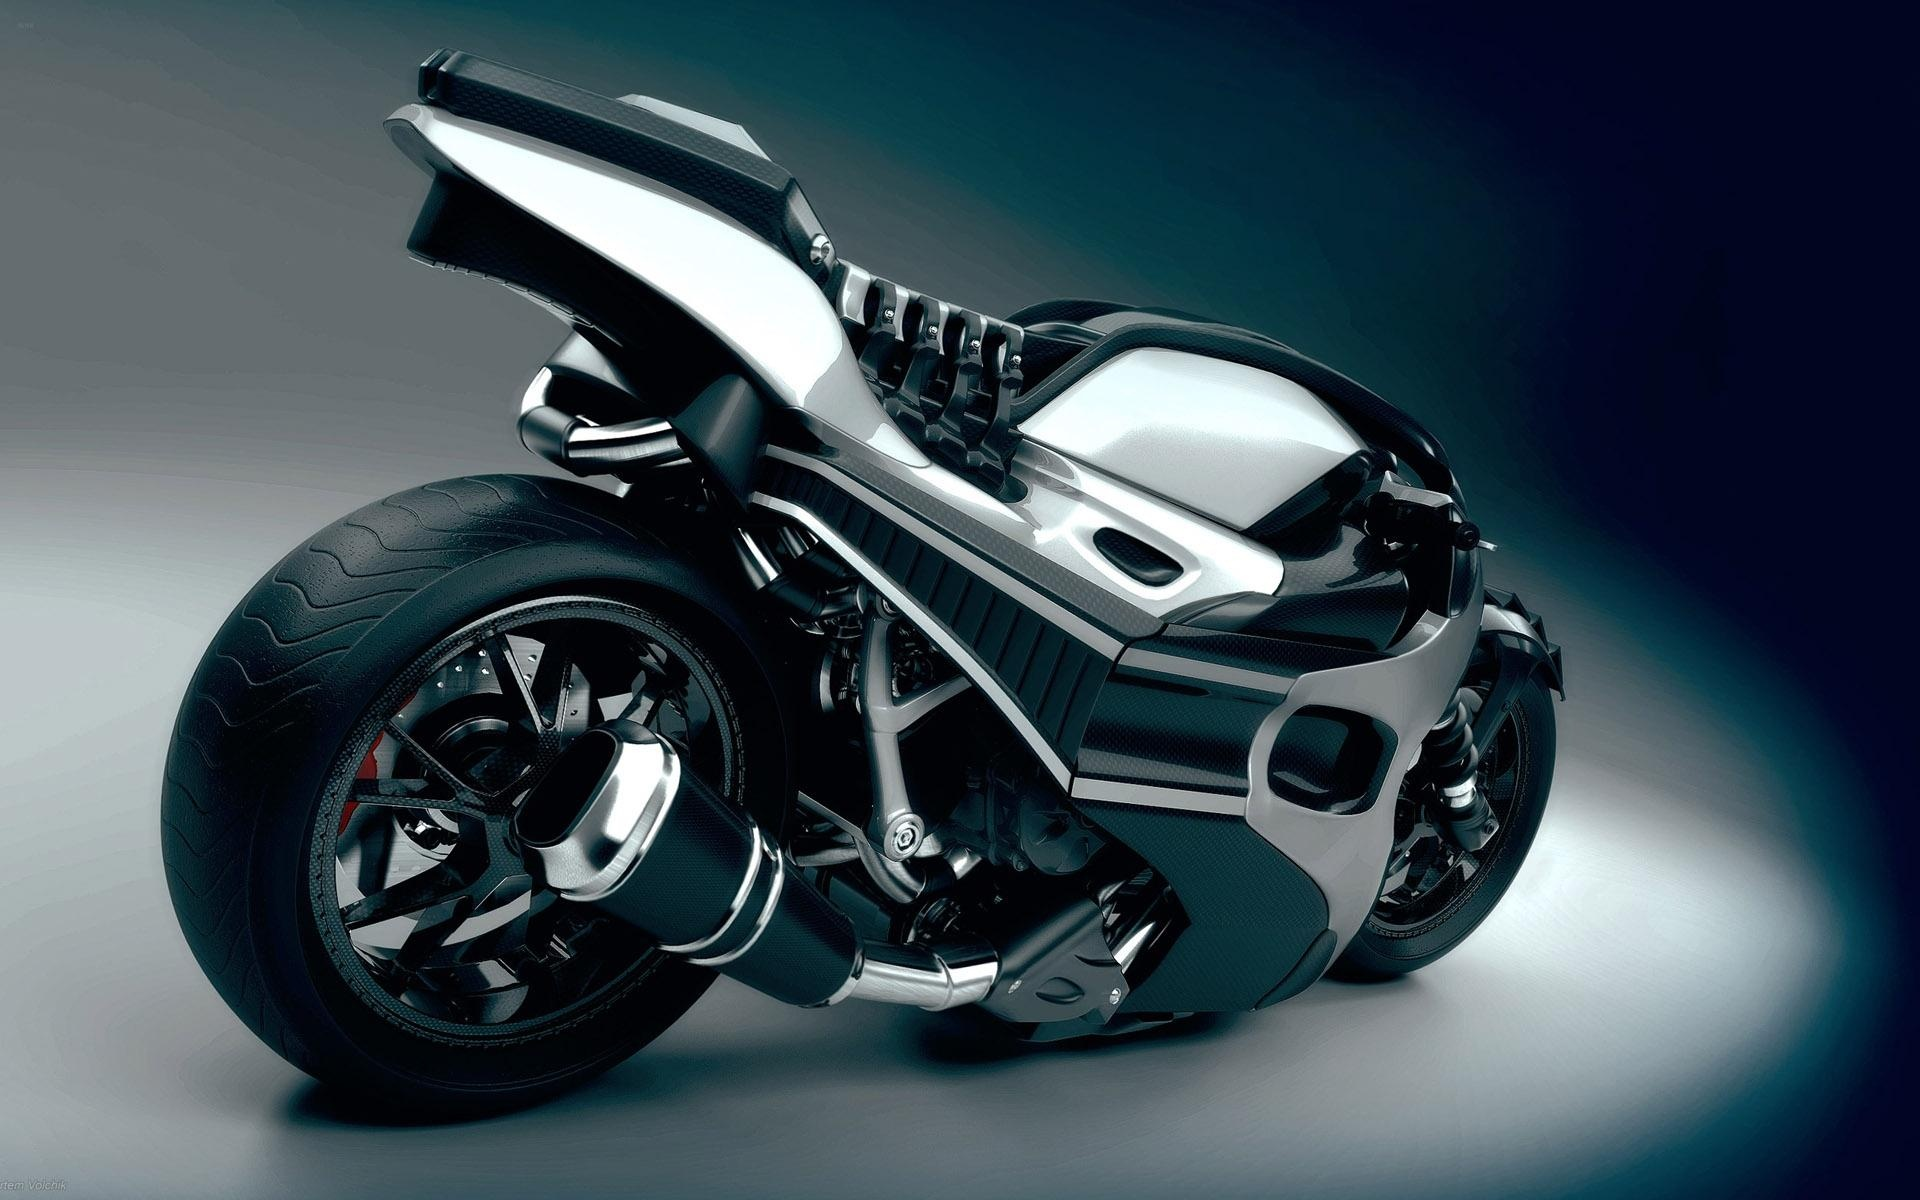 Bikes Stunts Hd Wallpapers: Wallpapers for Gt Cool Bike Stunts 1920x1200px